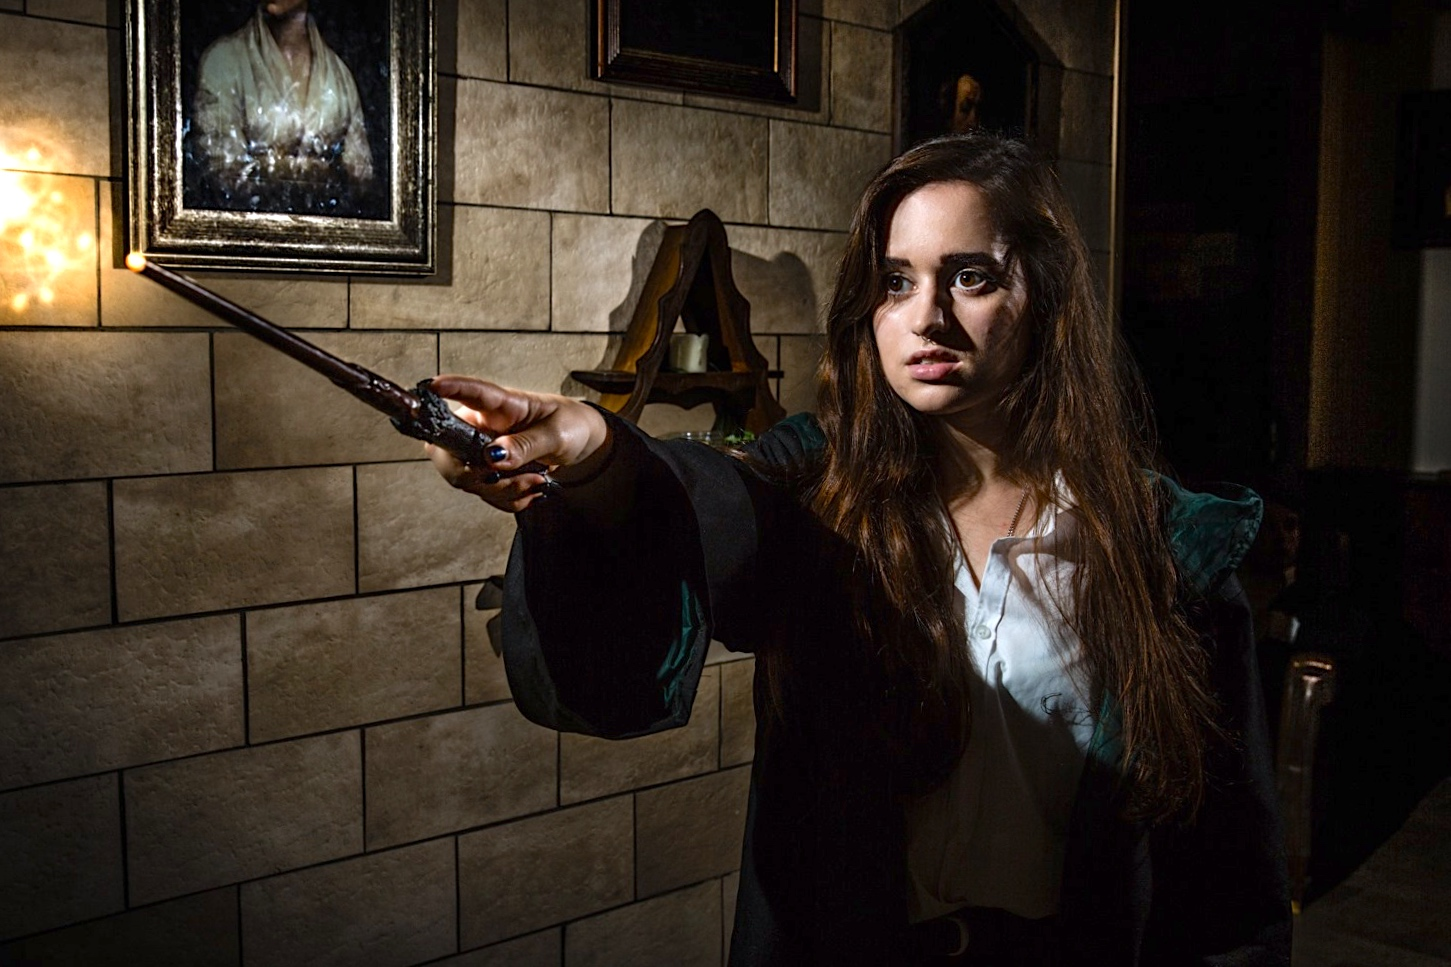 8/Wield your wizardly wisdom at a Potter-inspired escape room